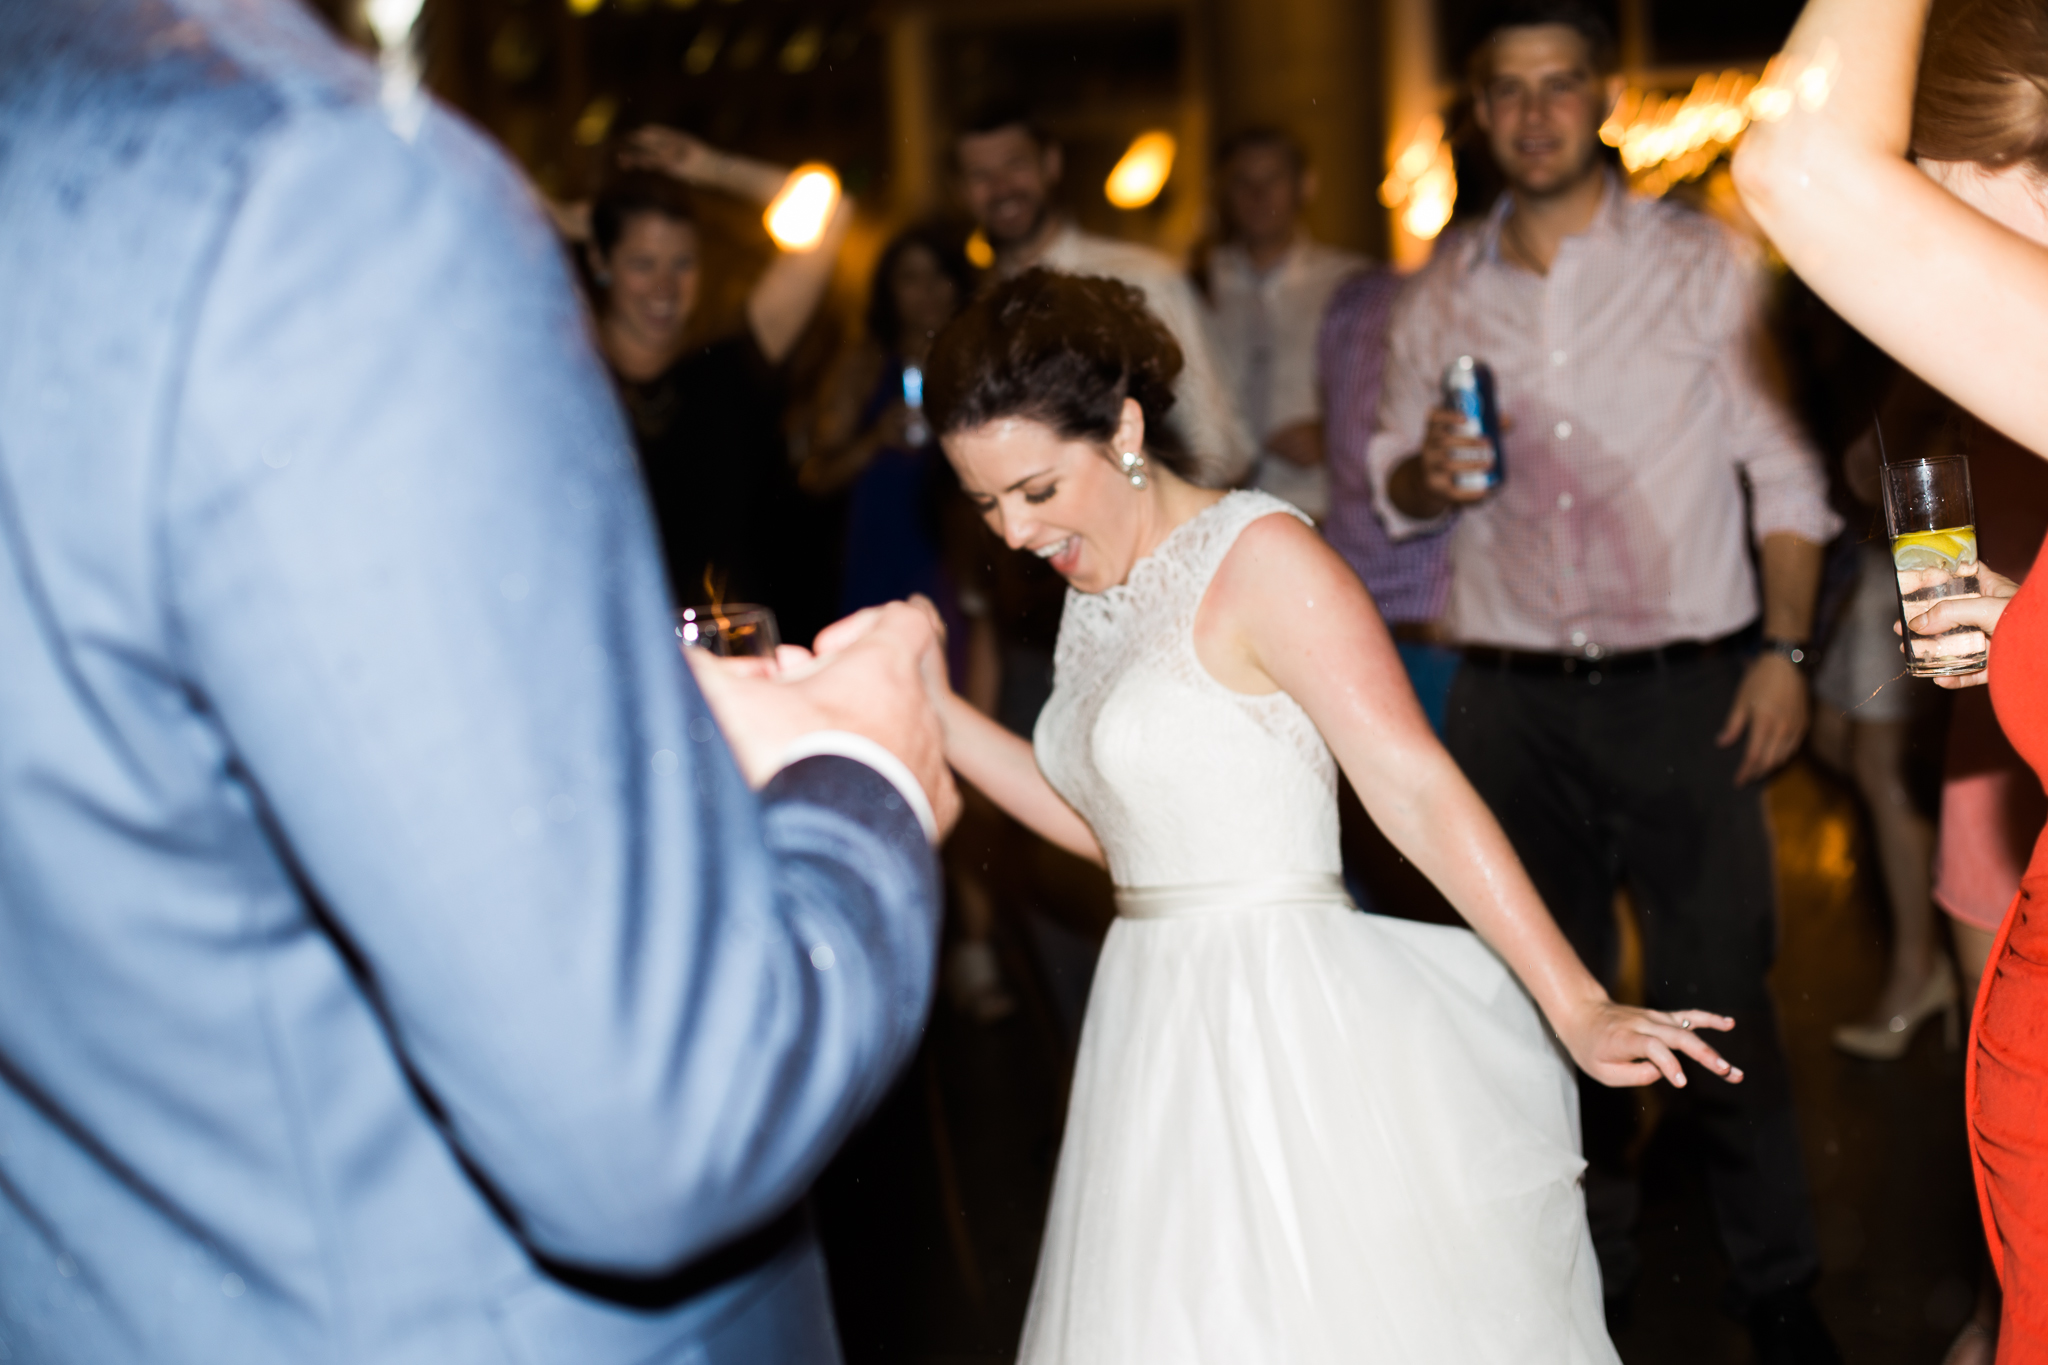 Coohills Wedding Photographer - dancing reception